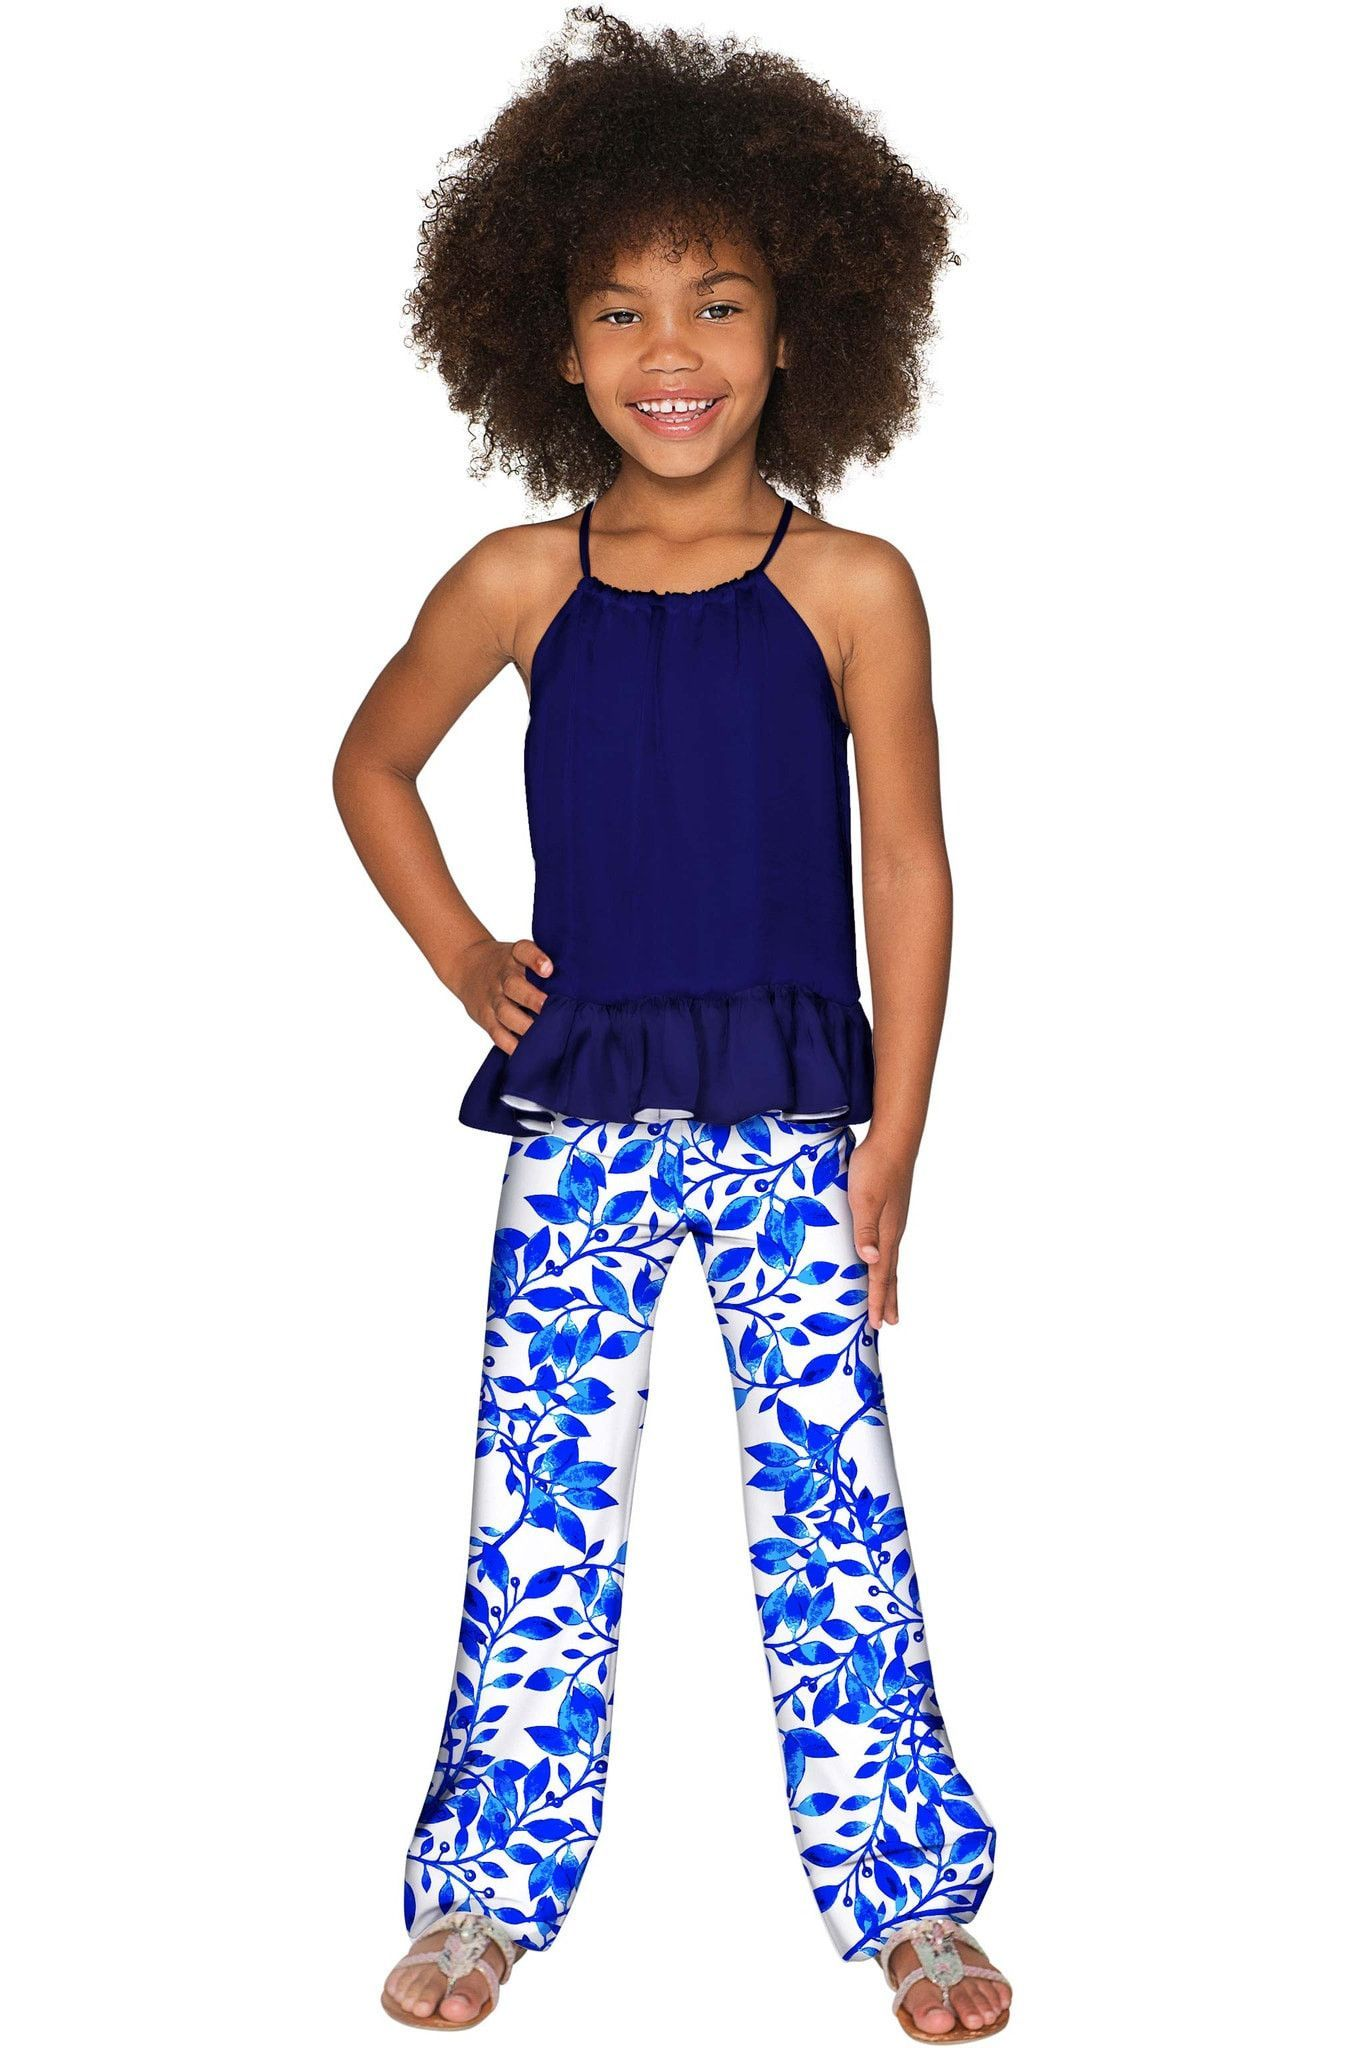 Whimsy Angela Chic Set - Girls